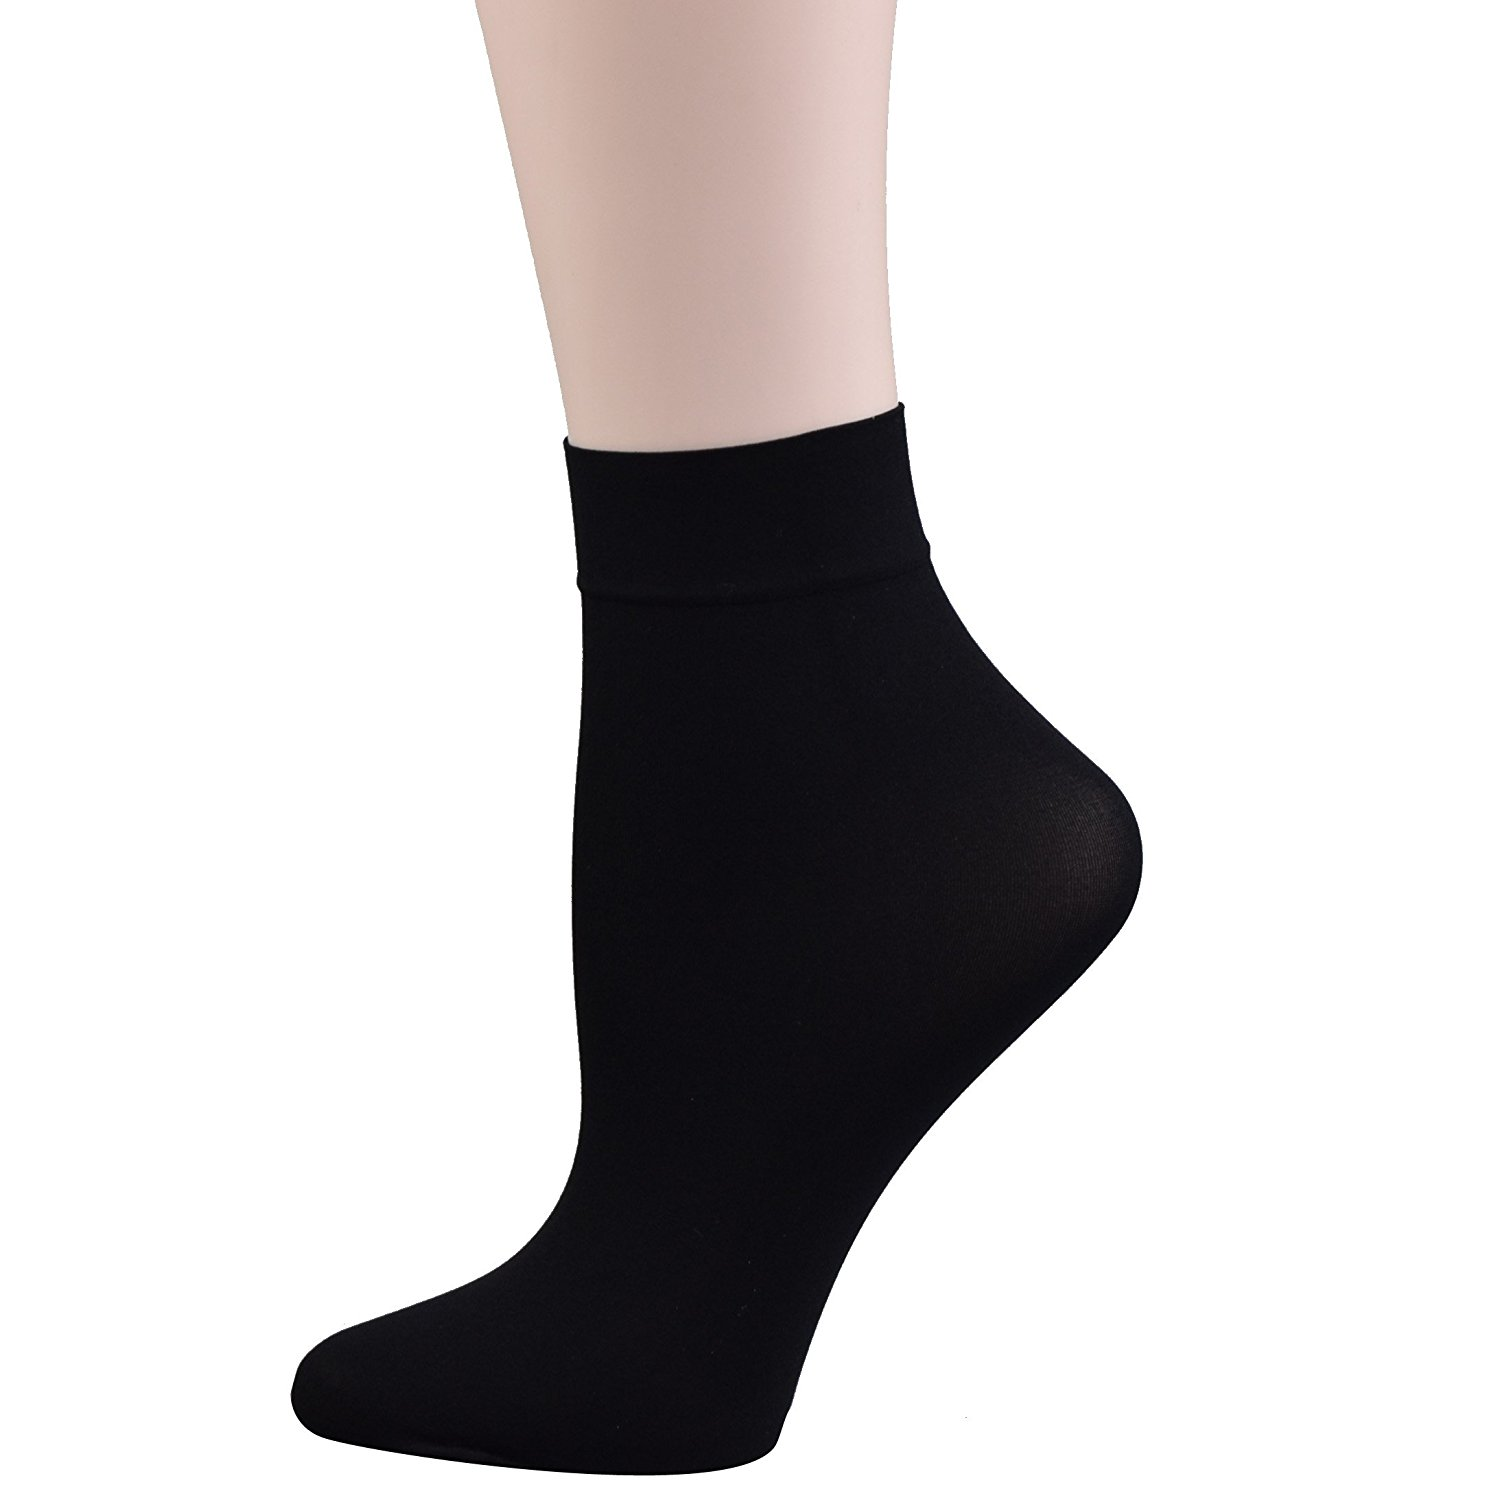 e4a33c23b Get Quotations · Fitu Women's 10-12 Pairs Nylon Ankle High Tights Hosiery  Socks